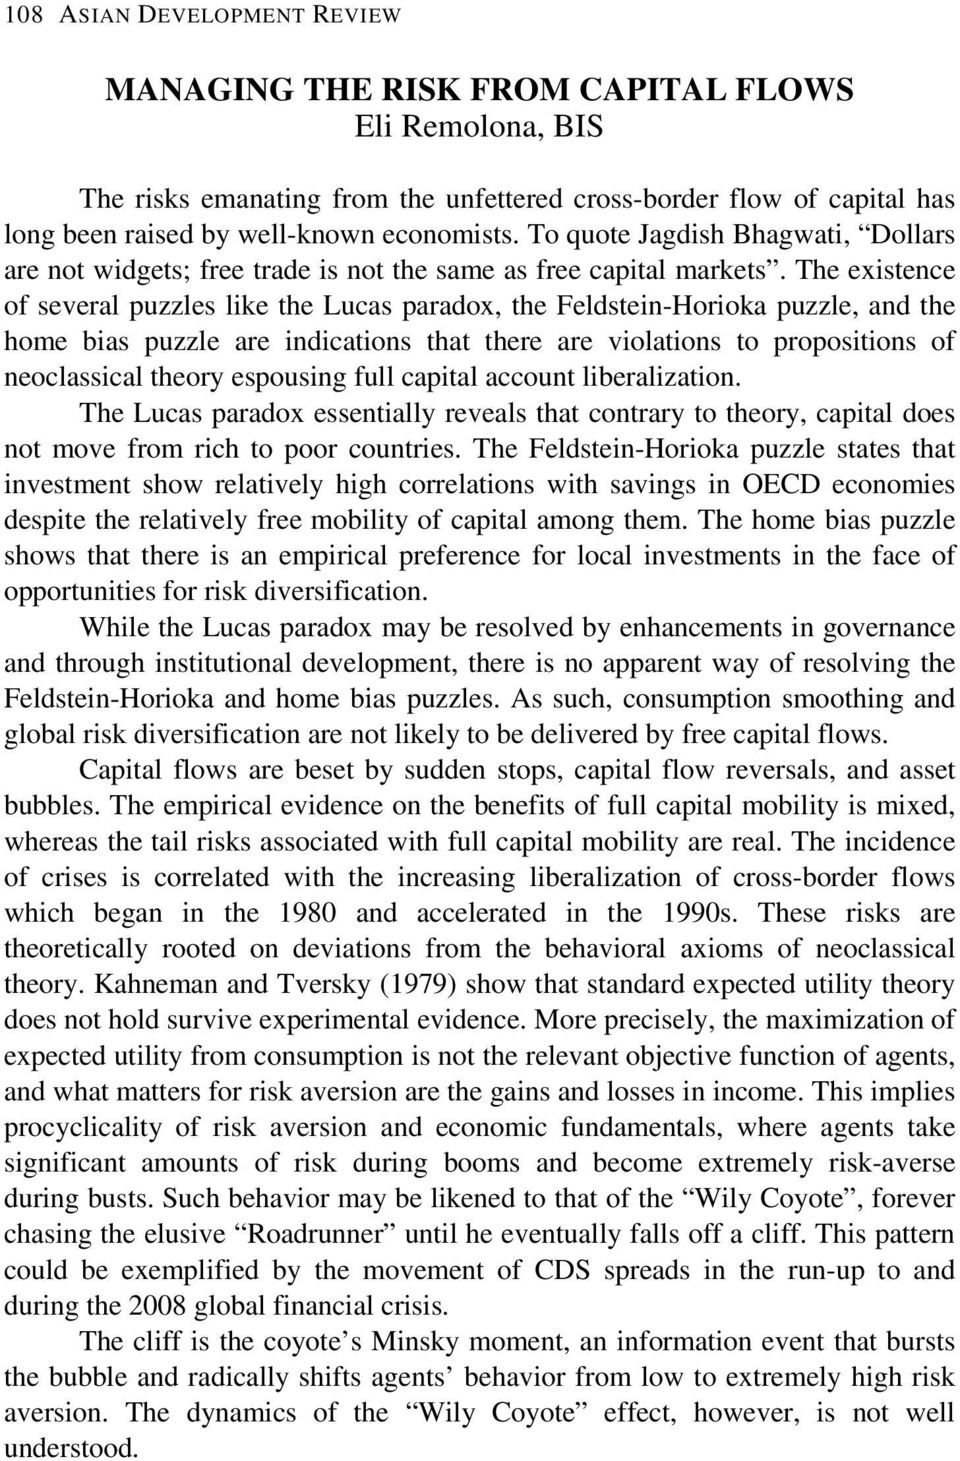 The existence of several puzzles like the Lucas paradox, the Feldstein-Horioka puzzle, and the home bias puzzle are indications that there are violations to propositions of neoclassical theory